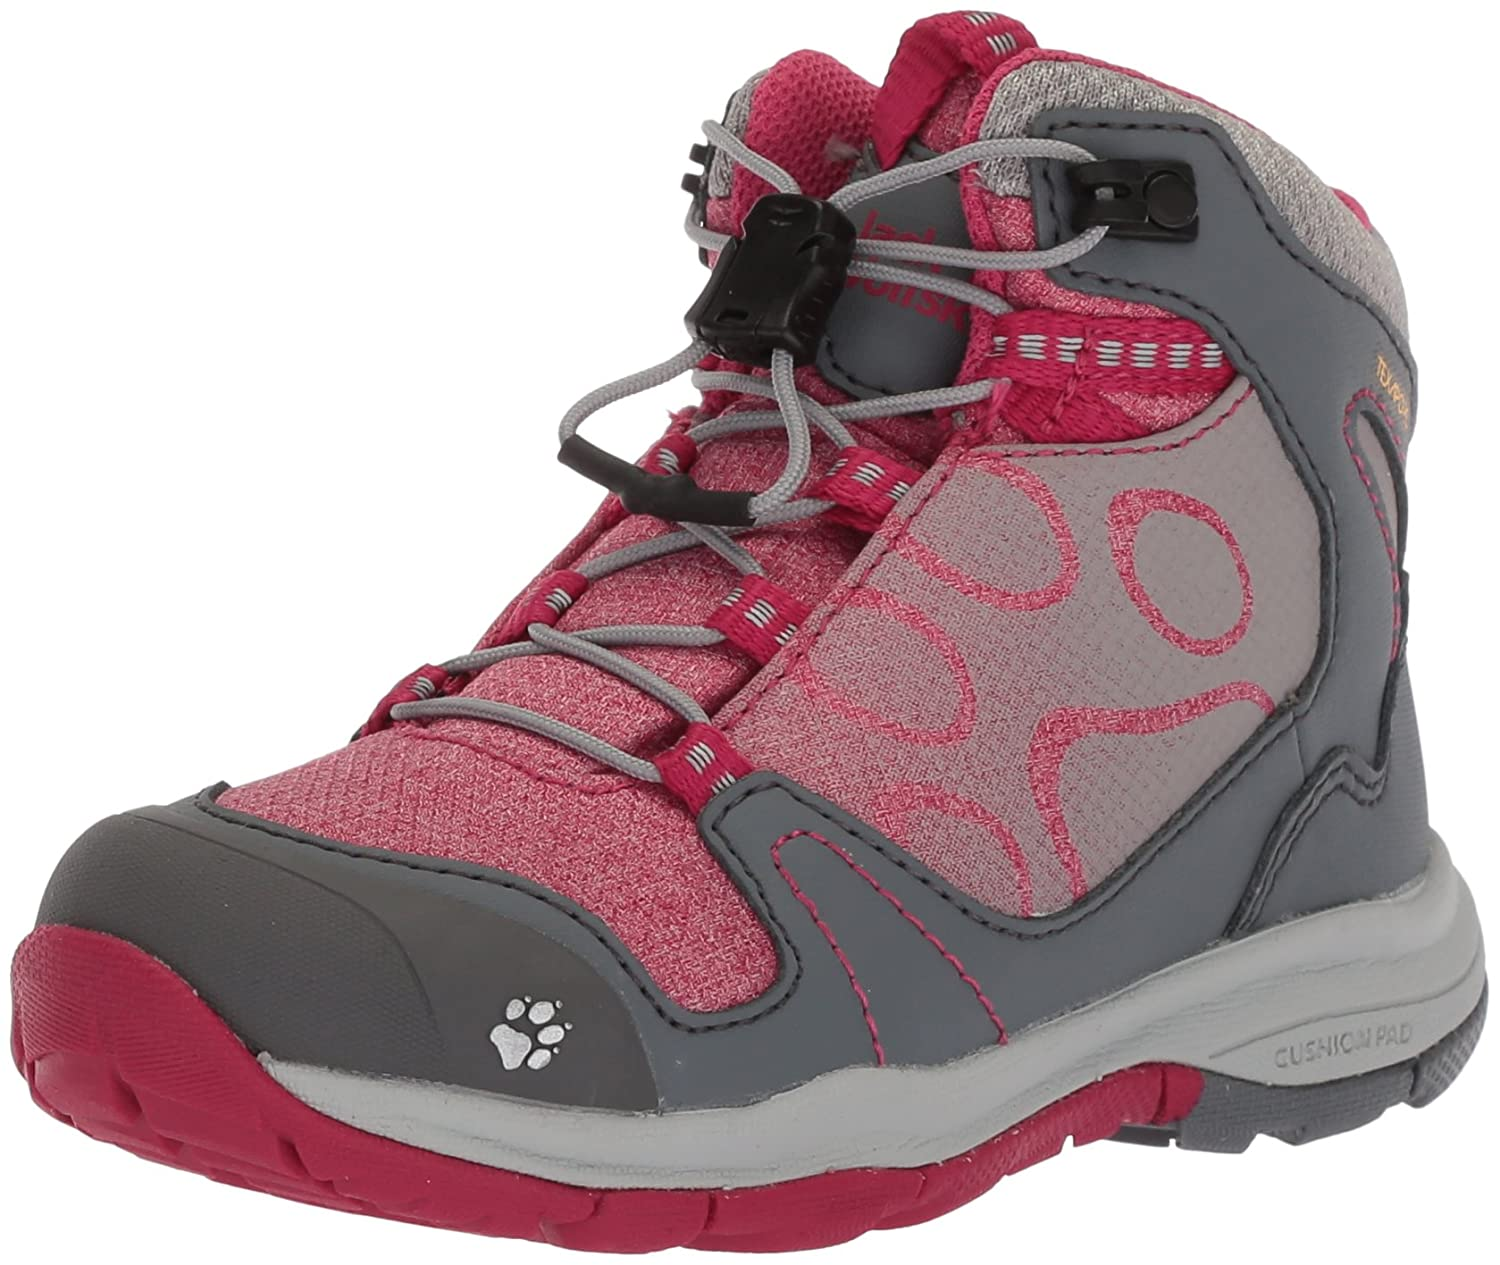 Jack Wolfskin Kids' Grivla Texapore Mid G Hiking Boot